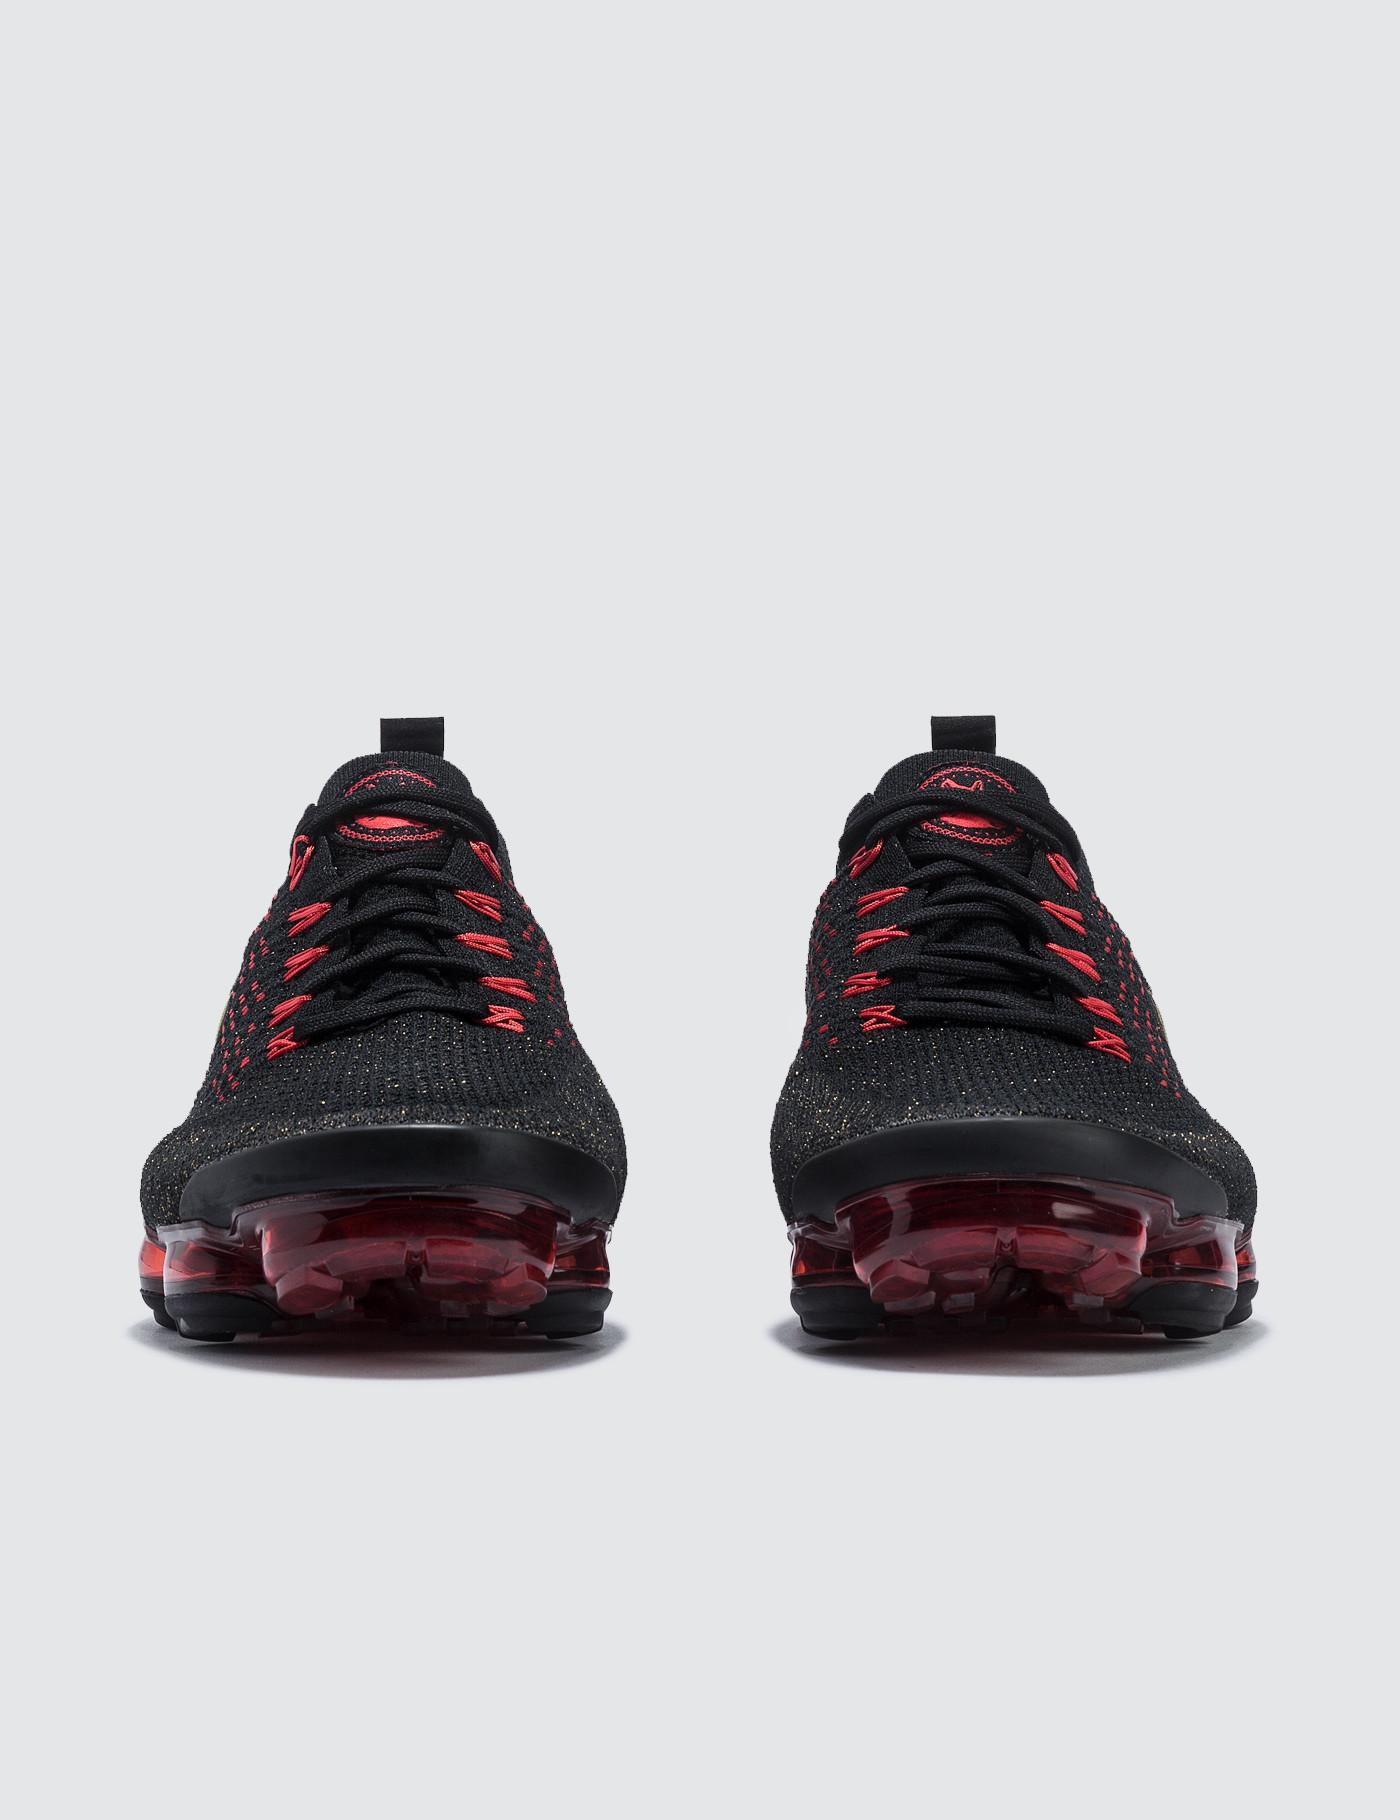 7102423d8f8 Lyst - Nike Air Vapormax Fk 2 Cny in Black for Men - Save 18%